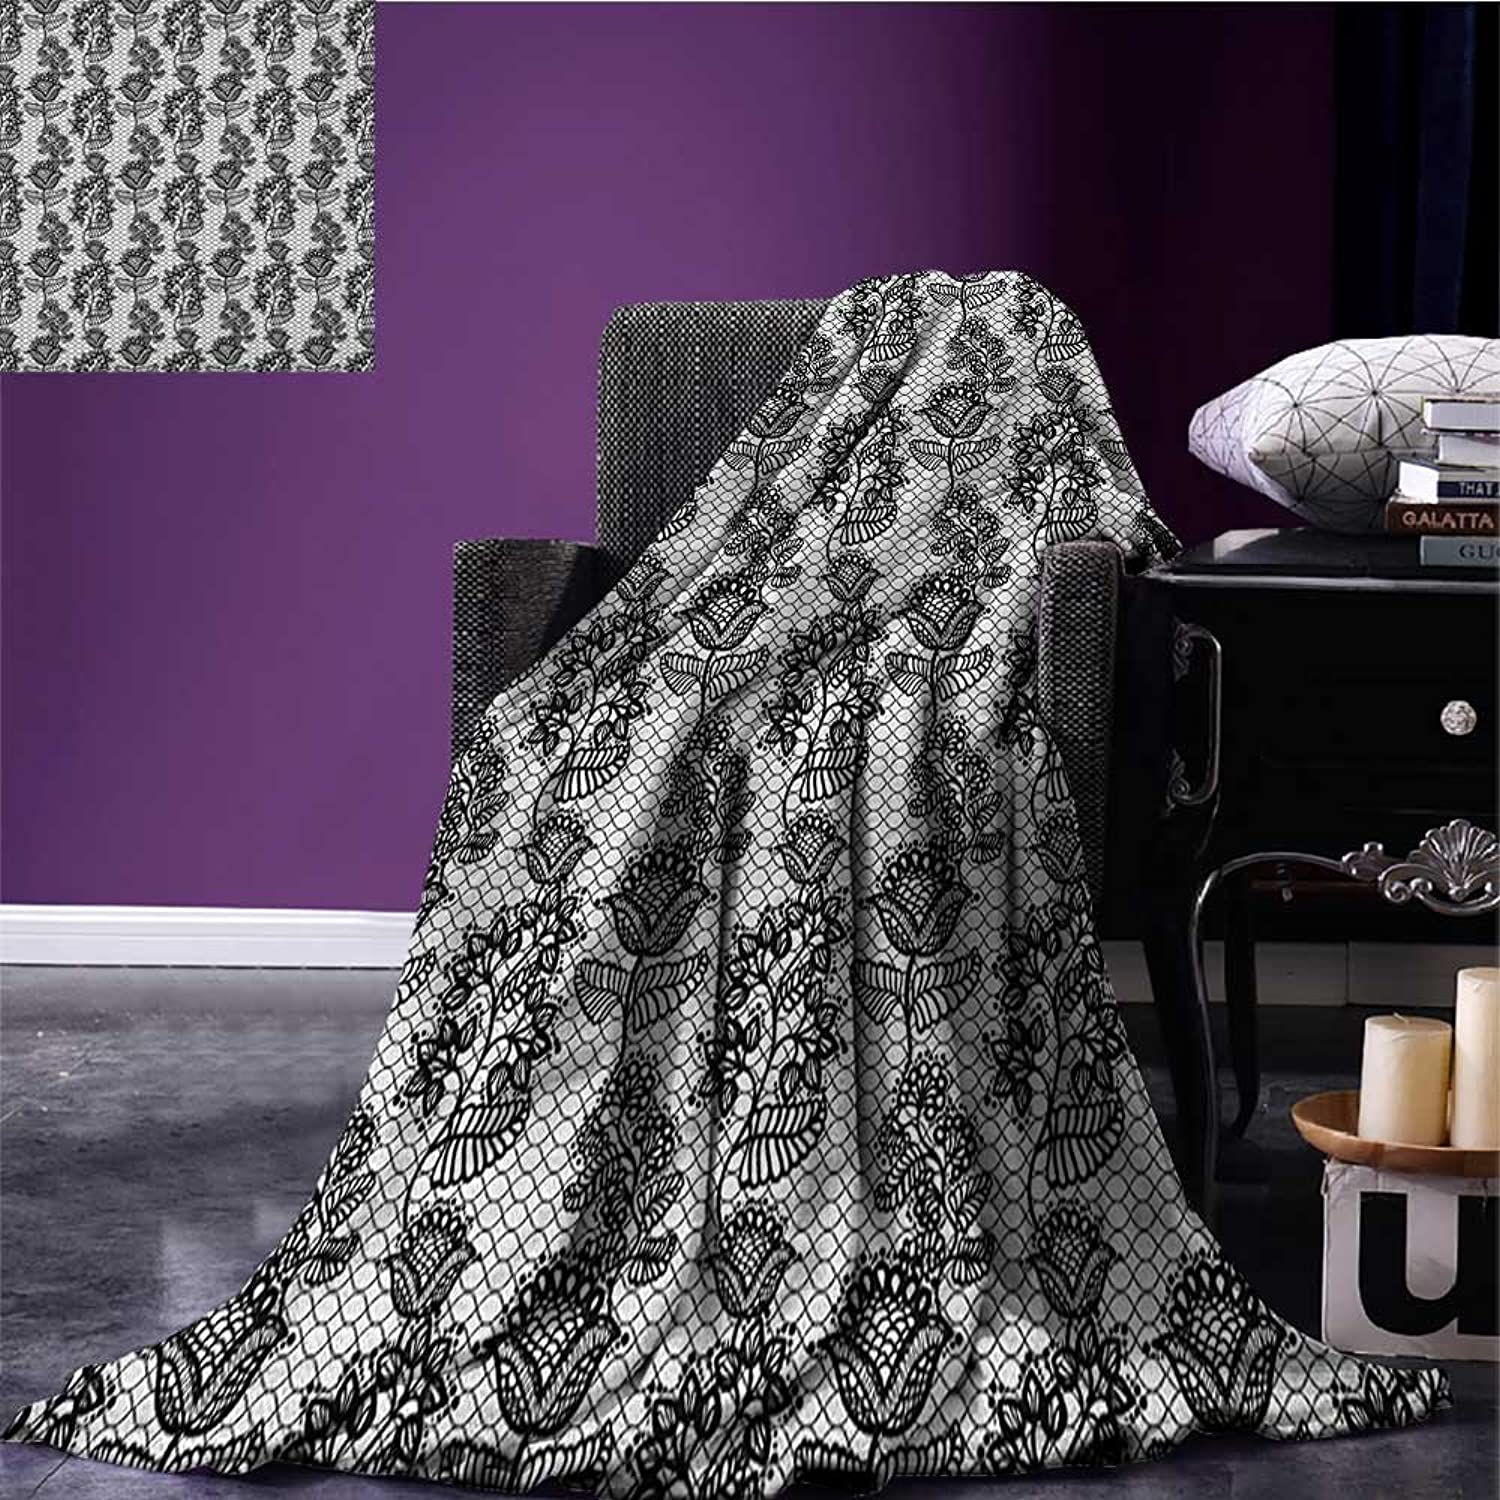 Black and White Emergency Blanket Lace Style Victorian Flower Motifs on Wavy Backdrop Western Girls Pattern Print Black White Size 59 x35.5